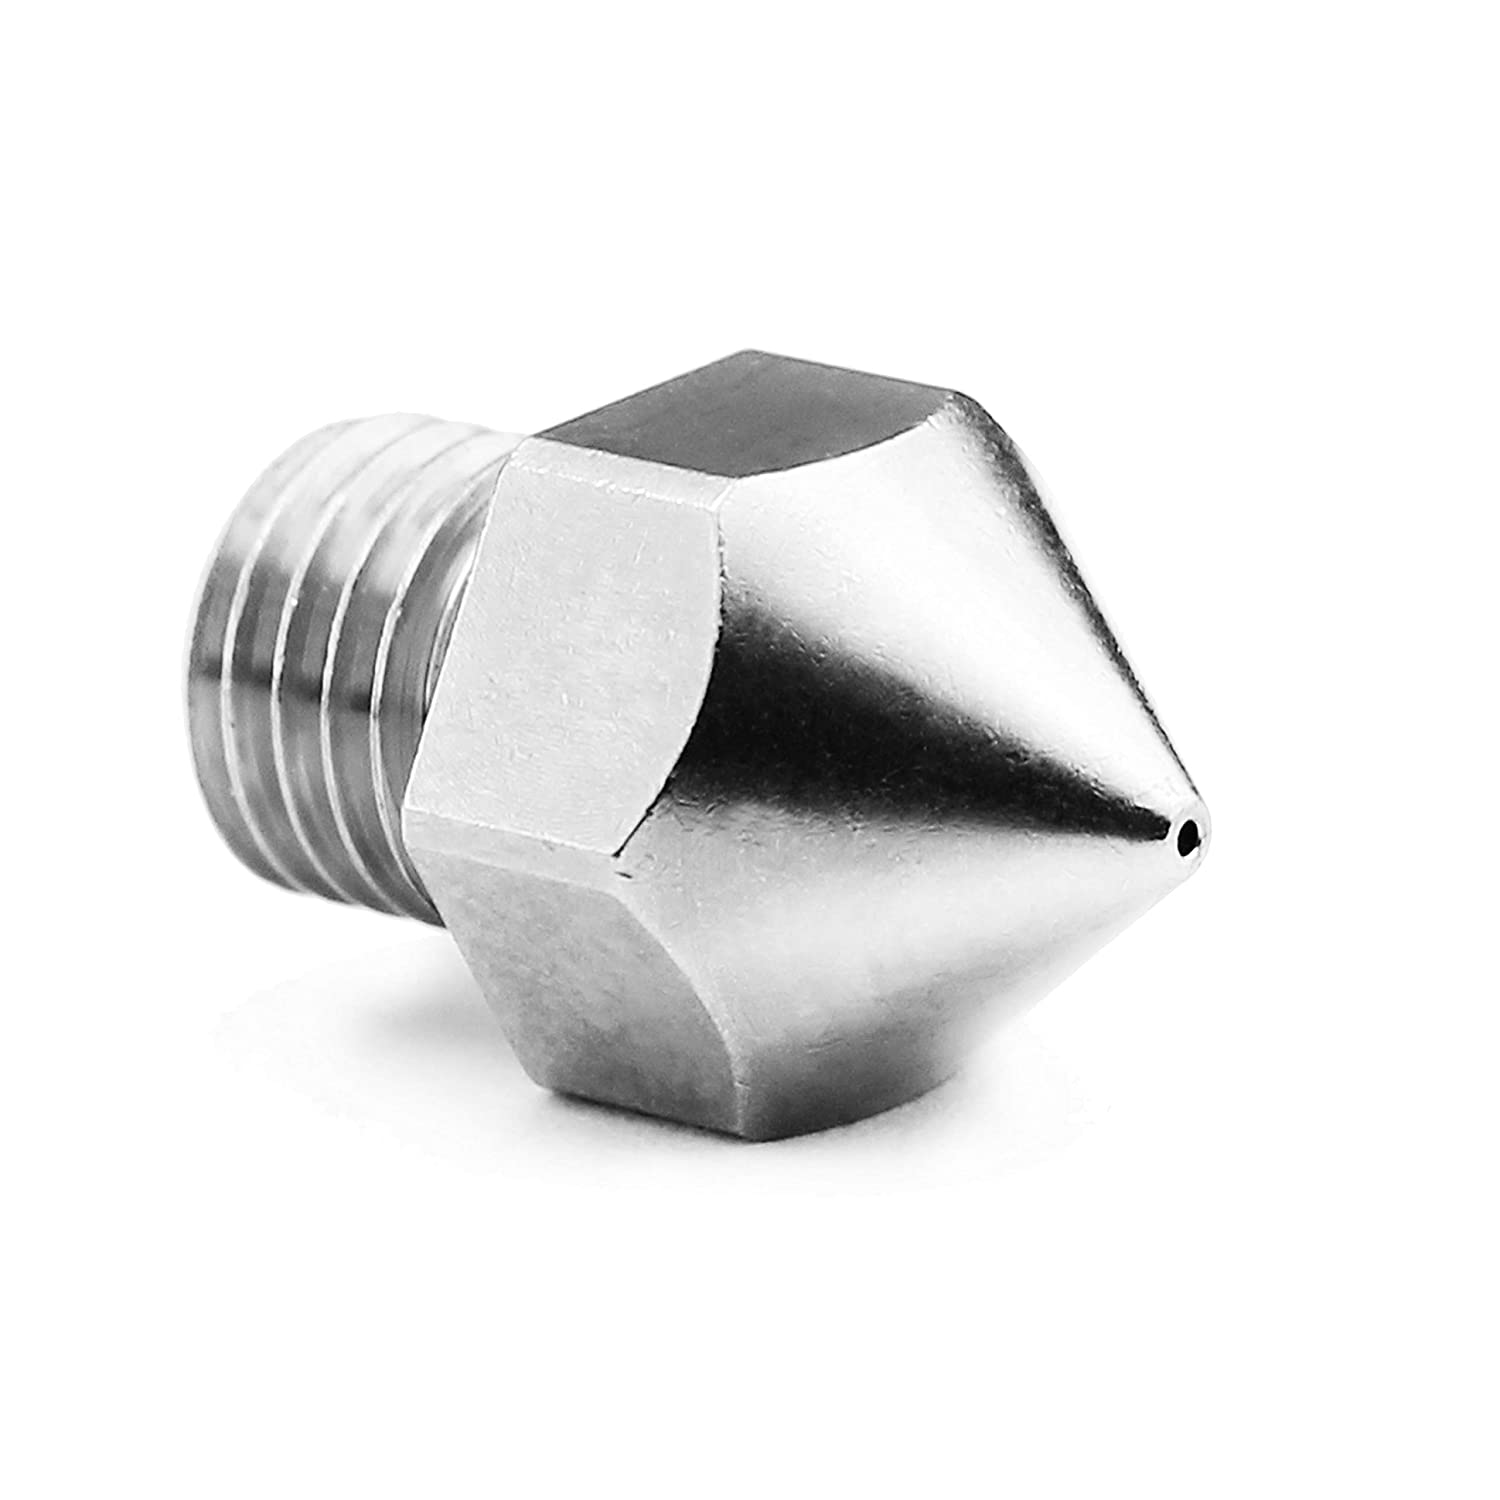 .6mm Micro Swiss Plated Wear Resistant Nozzle for Creality CR-10S Pro//CR-10 MAX Original hotend ONLY M6x.75mm Threads